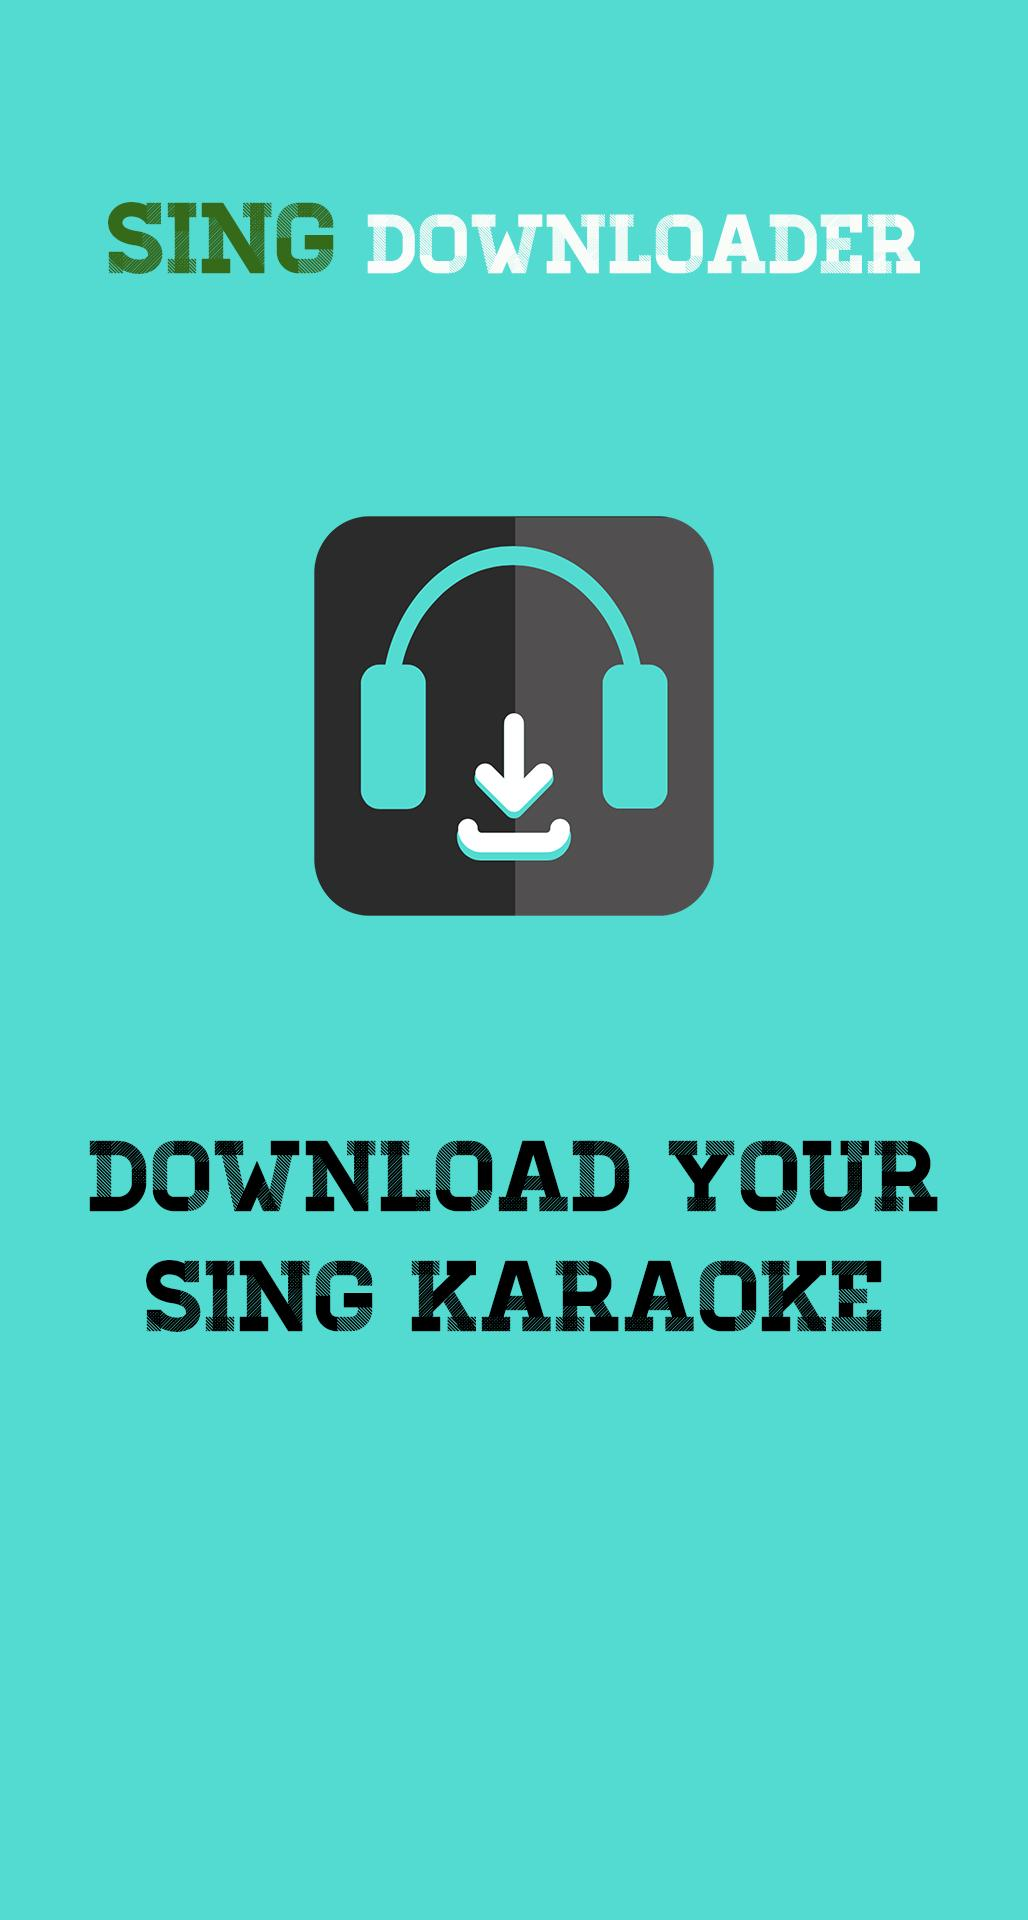 Sing Downloader for Smule for Android - APK Download